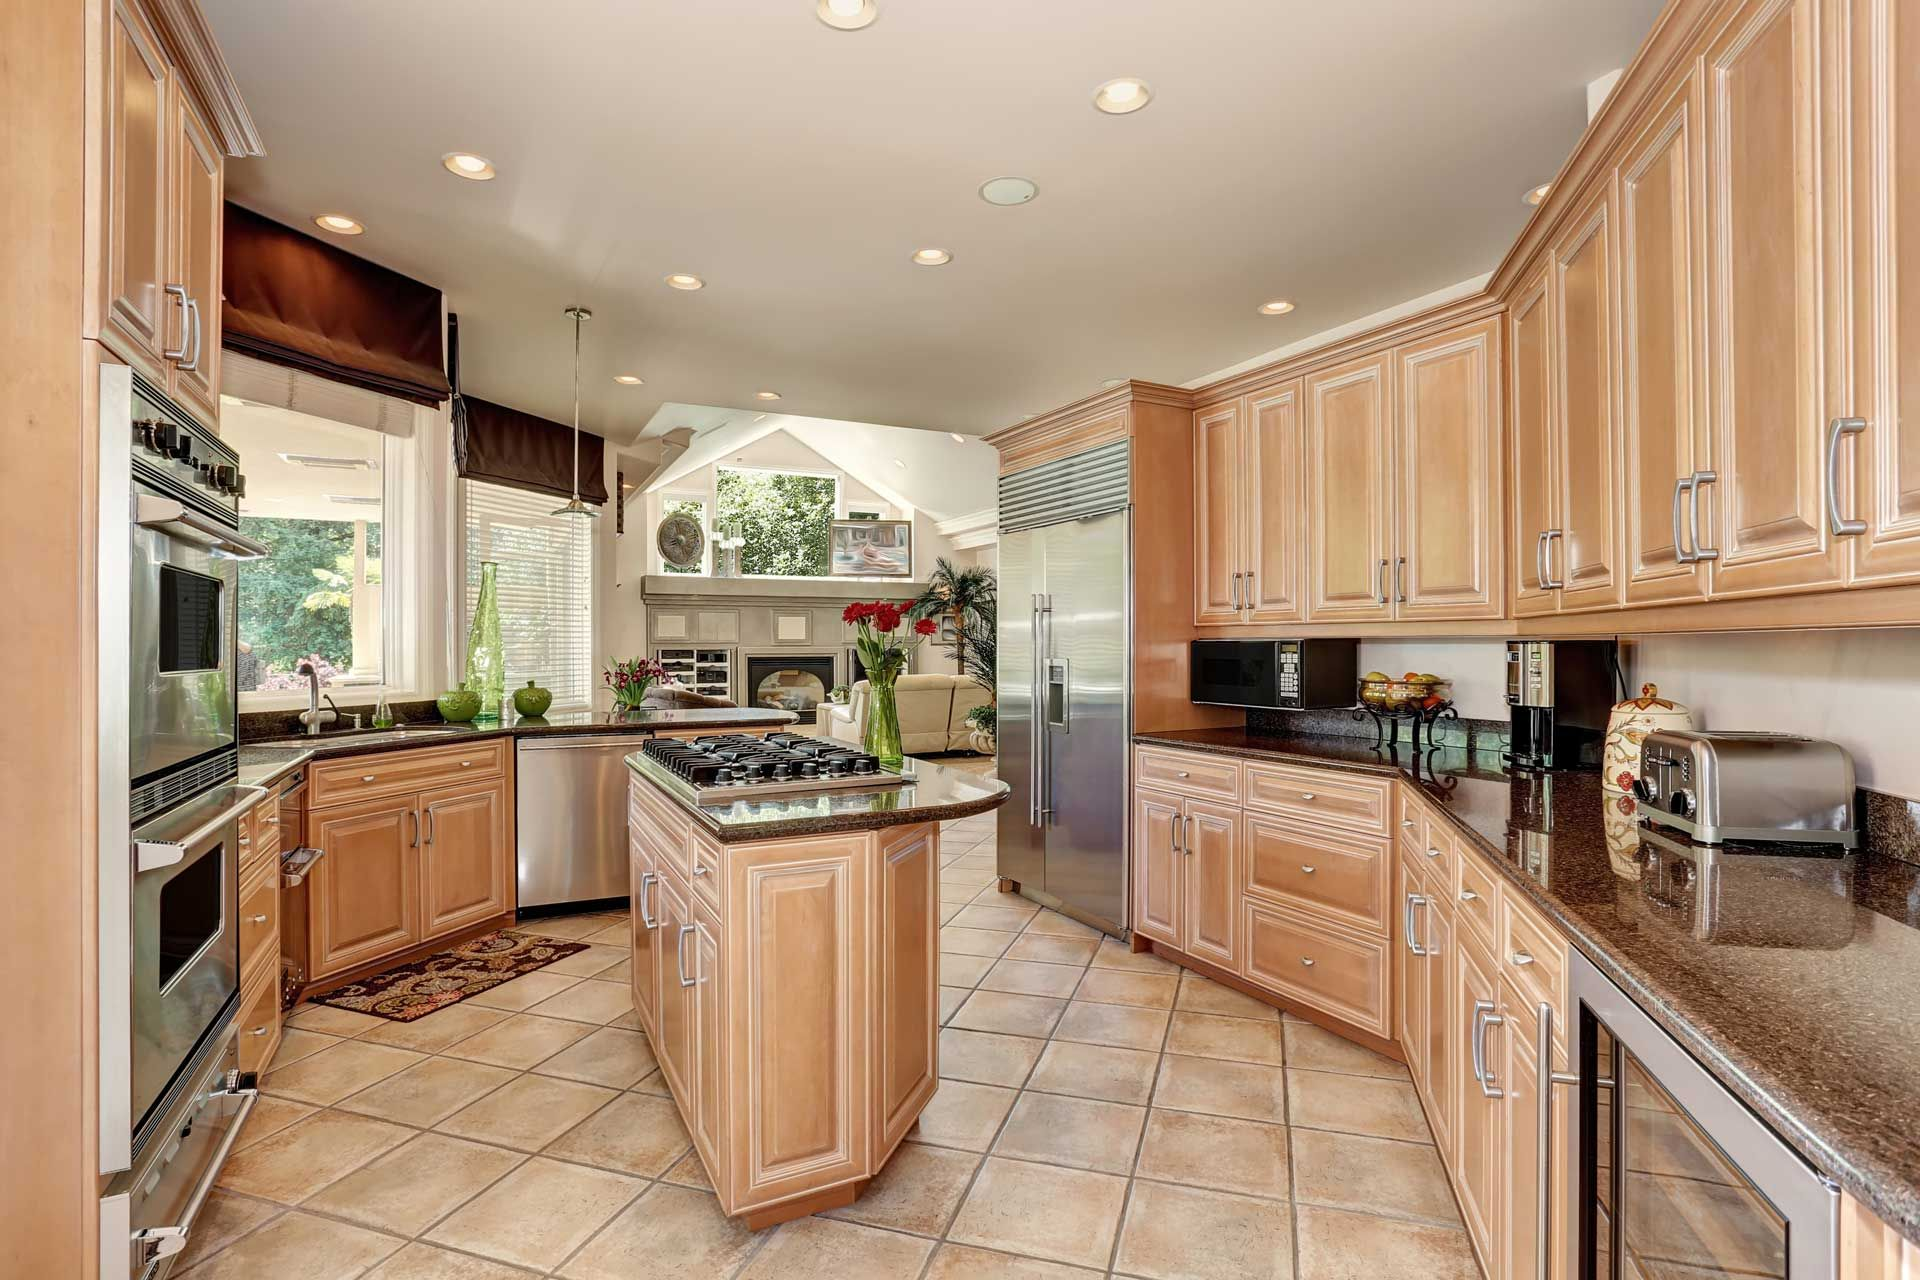 10 tips for remodeling a galley kitchen with images